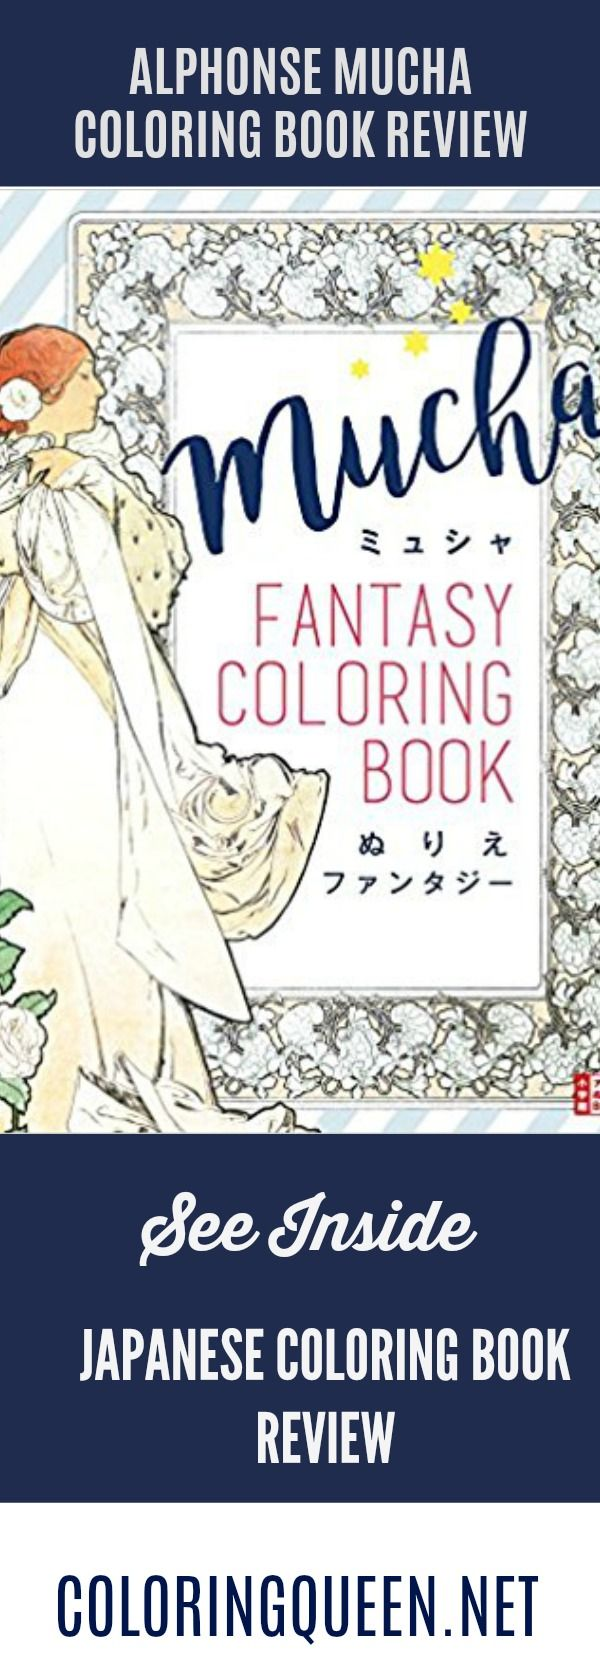 The coloring book analysis - Mucha Fantasy Coloring Book Review